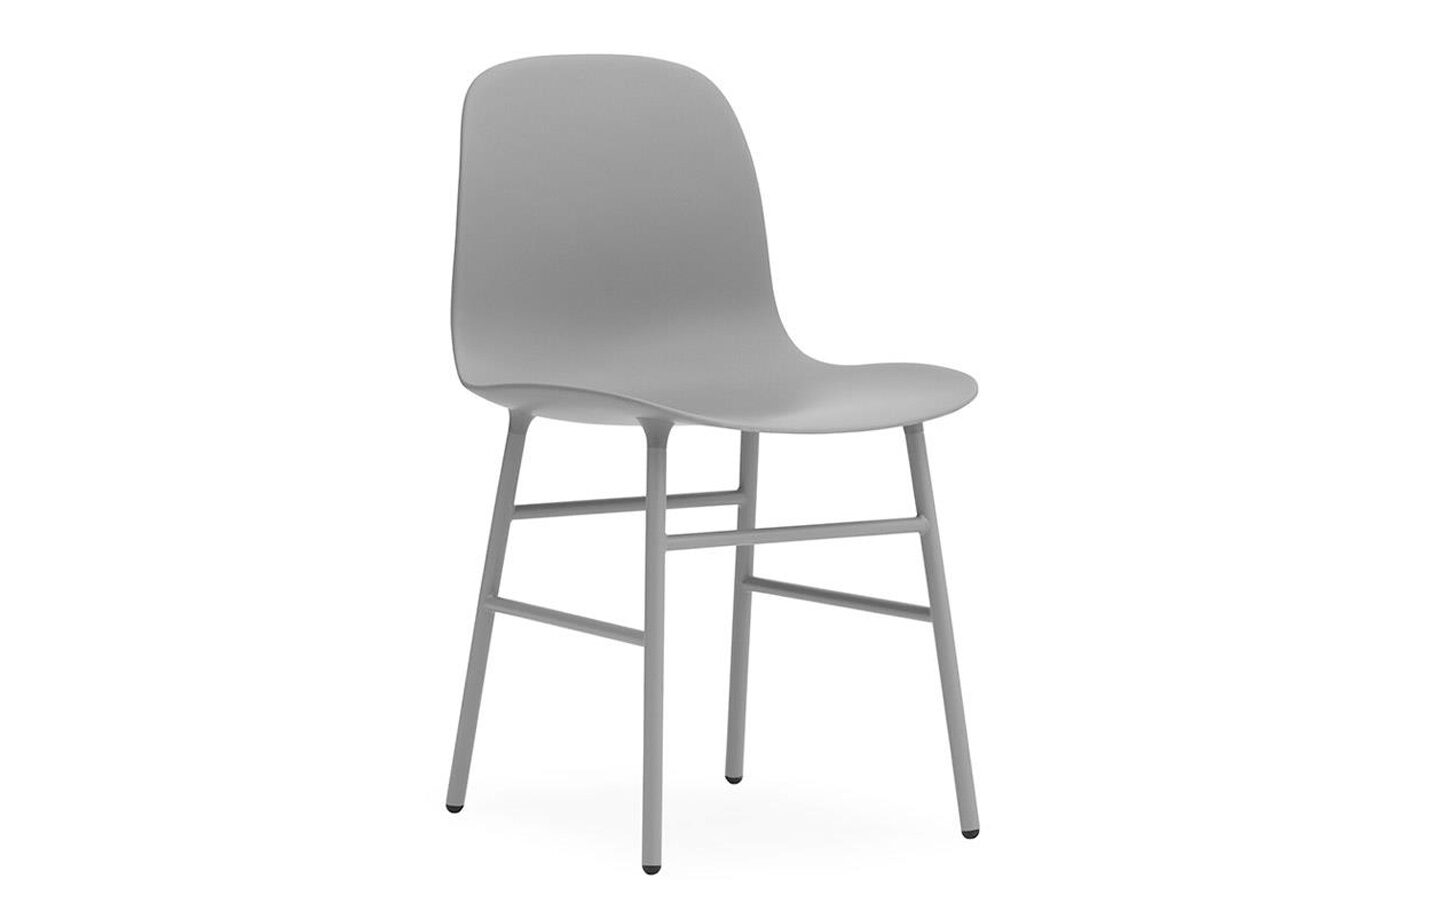 Form-chair-steel-Gray-by-Normann